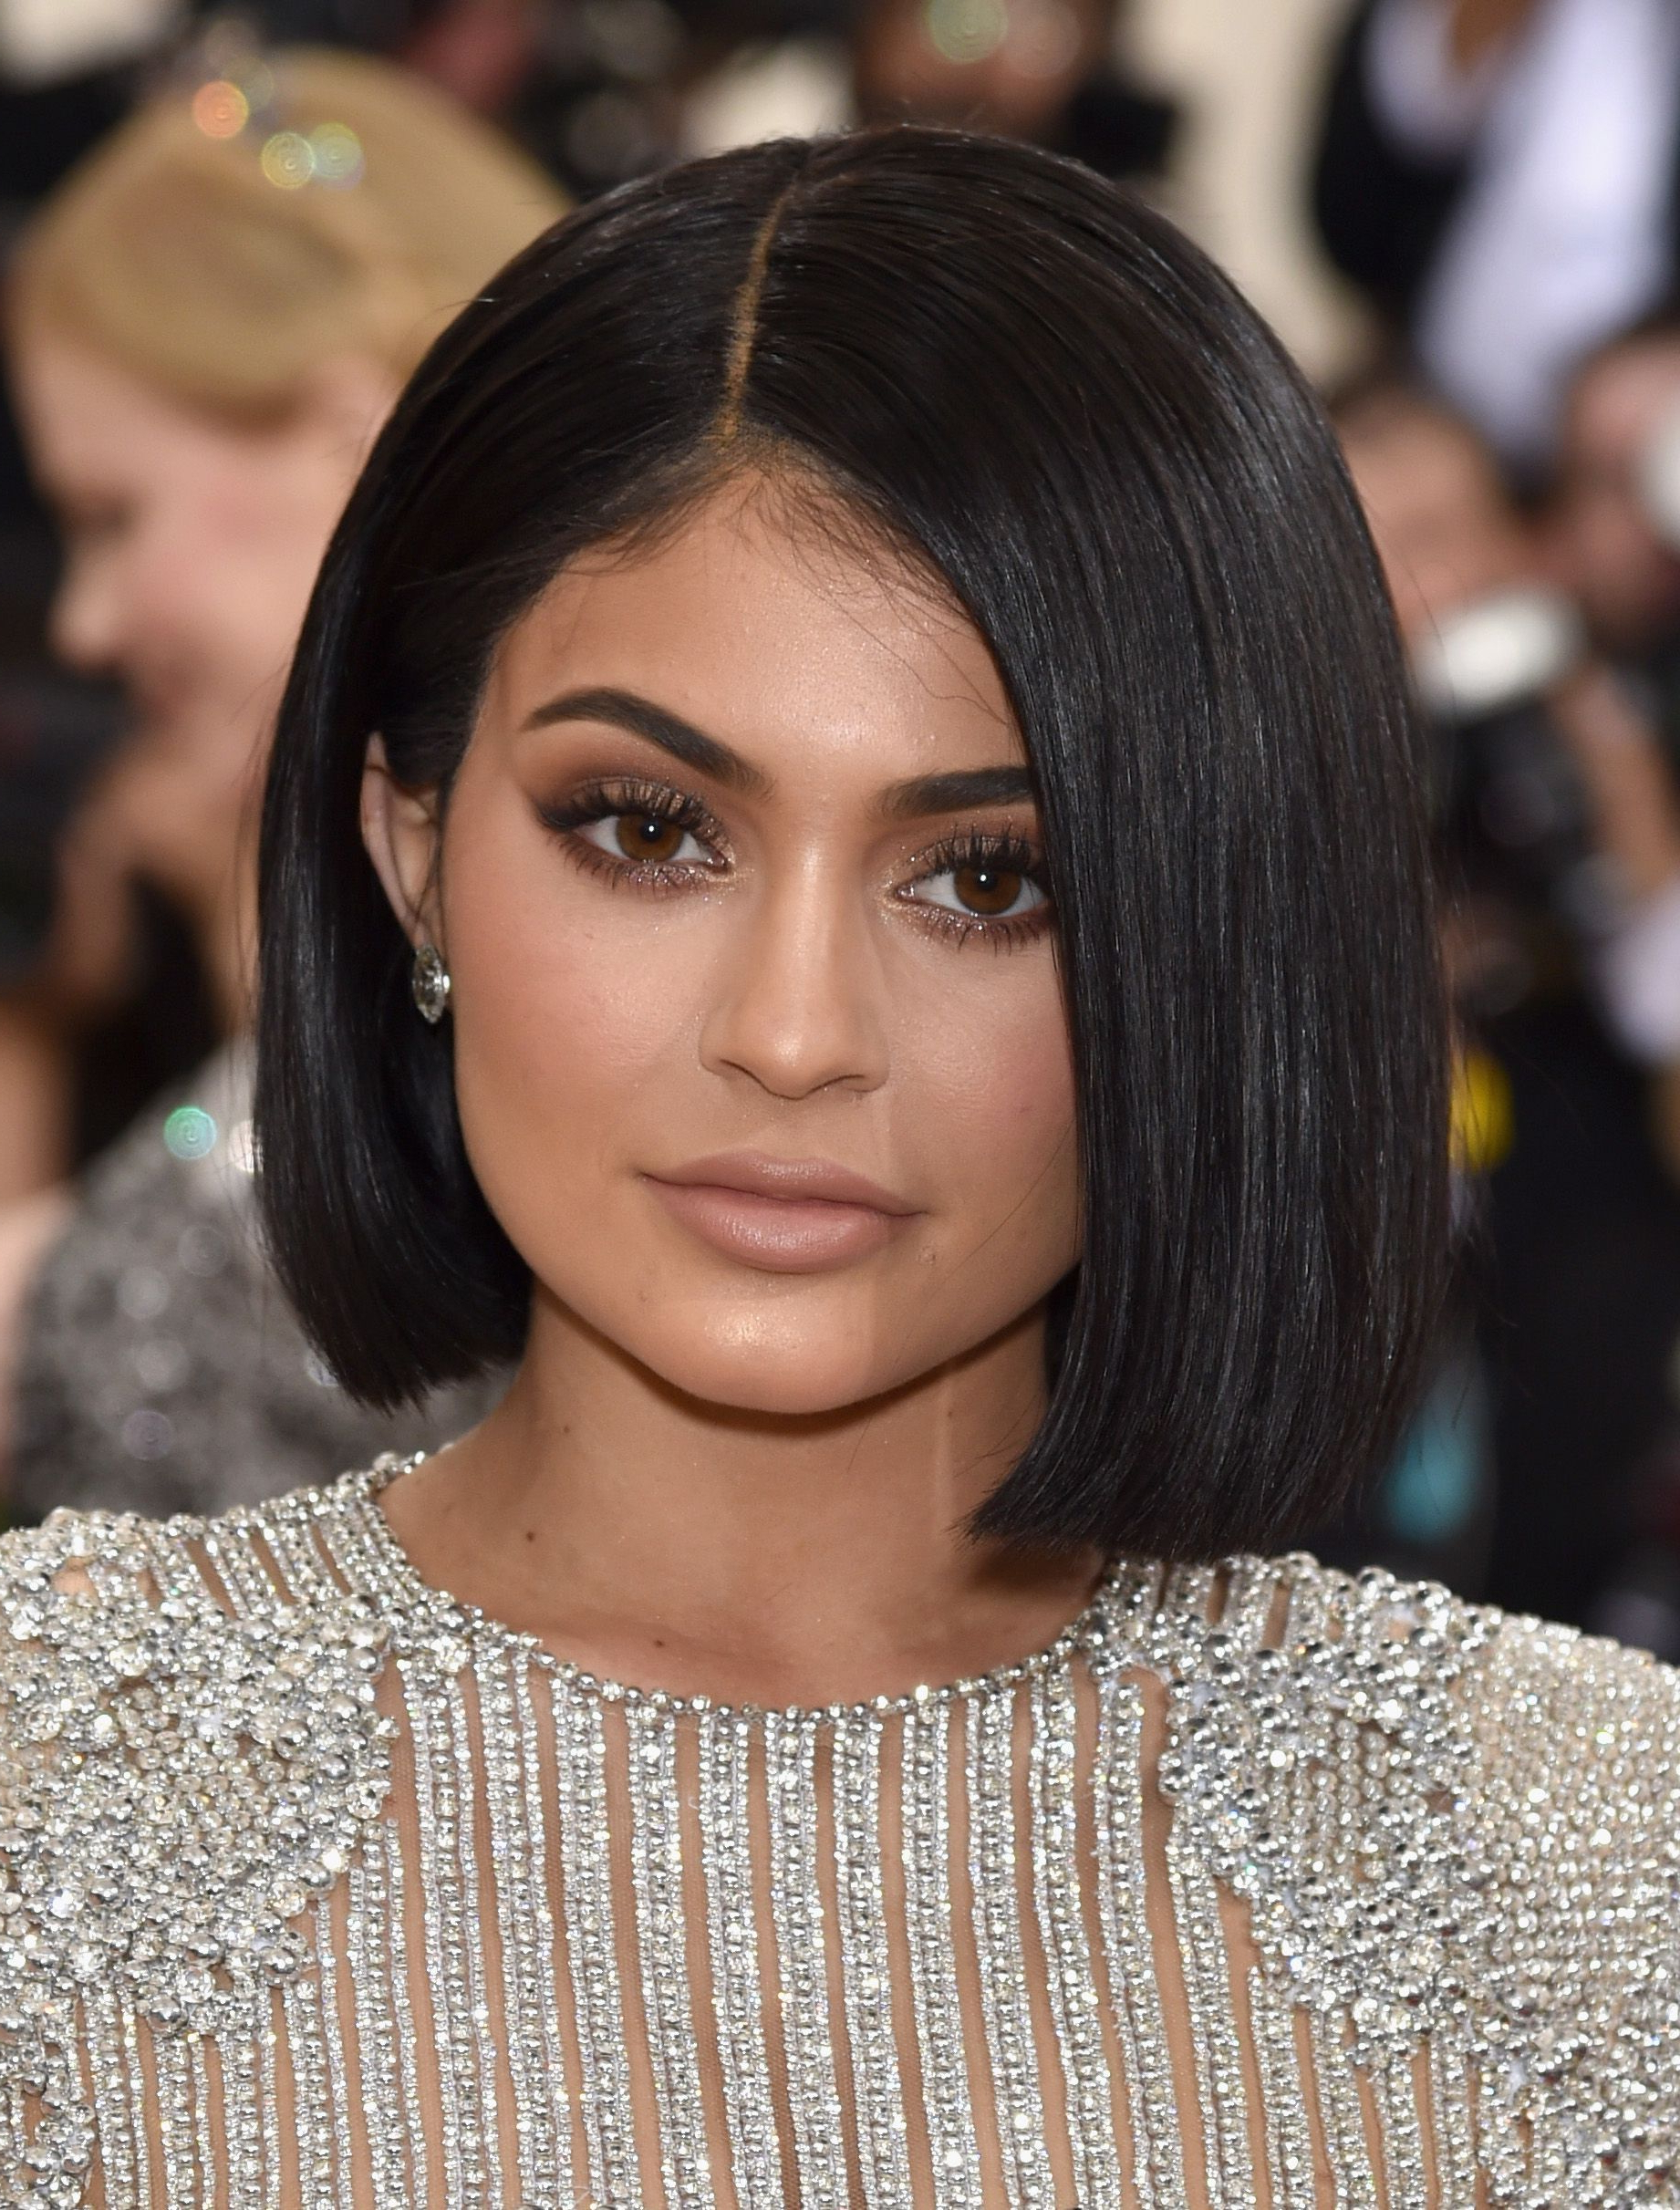 The 65 Best Short Hairstyles And Haircuts To Try Now | Haircuts Regarding Kylie Jenner Short Haircuts (View 16 of 25)